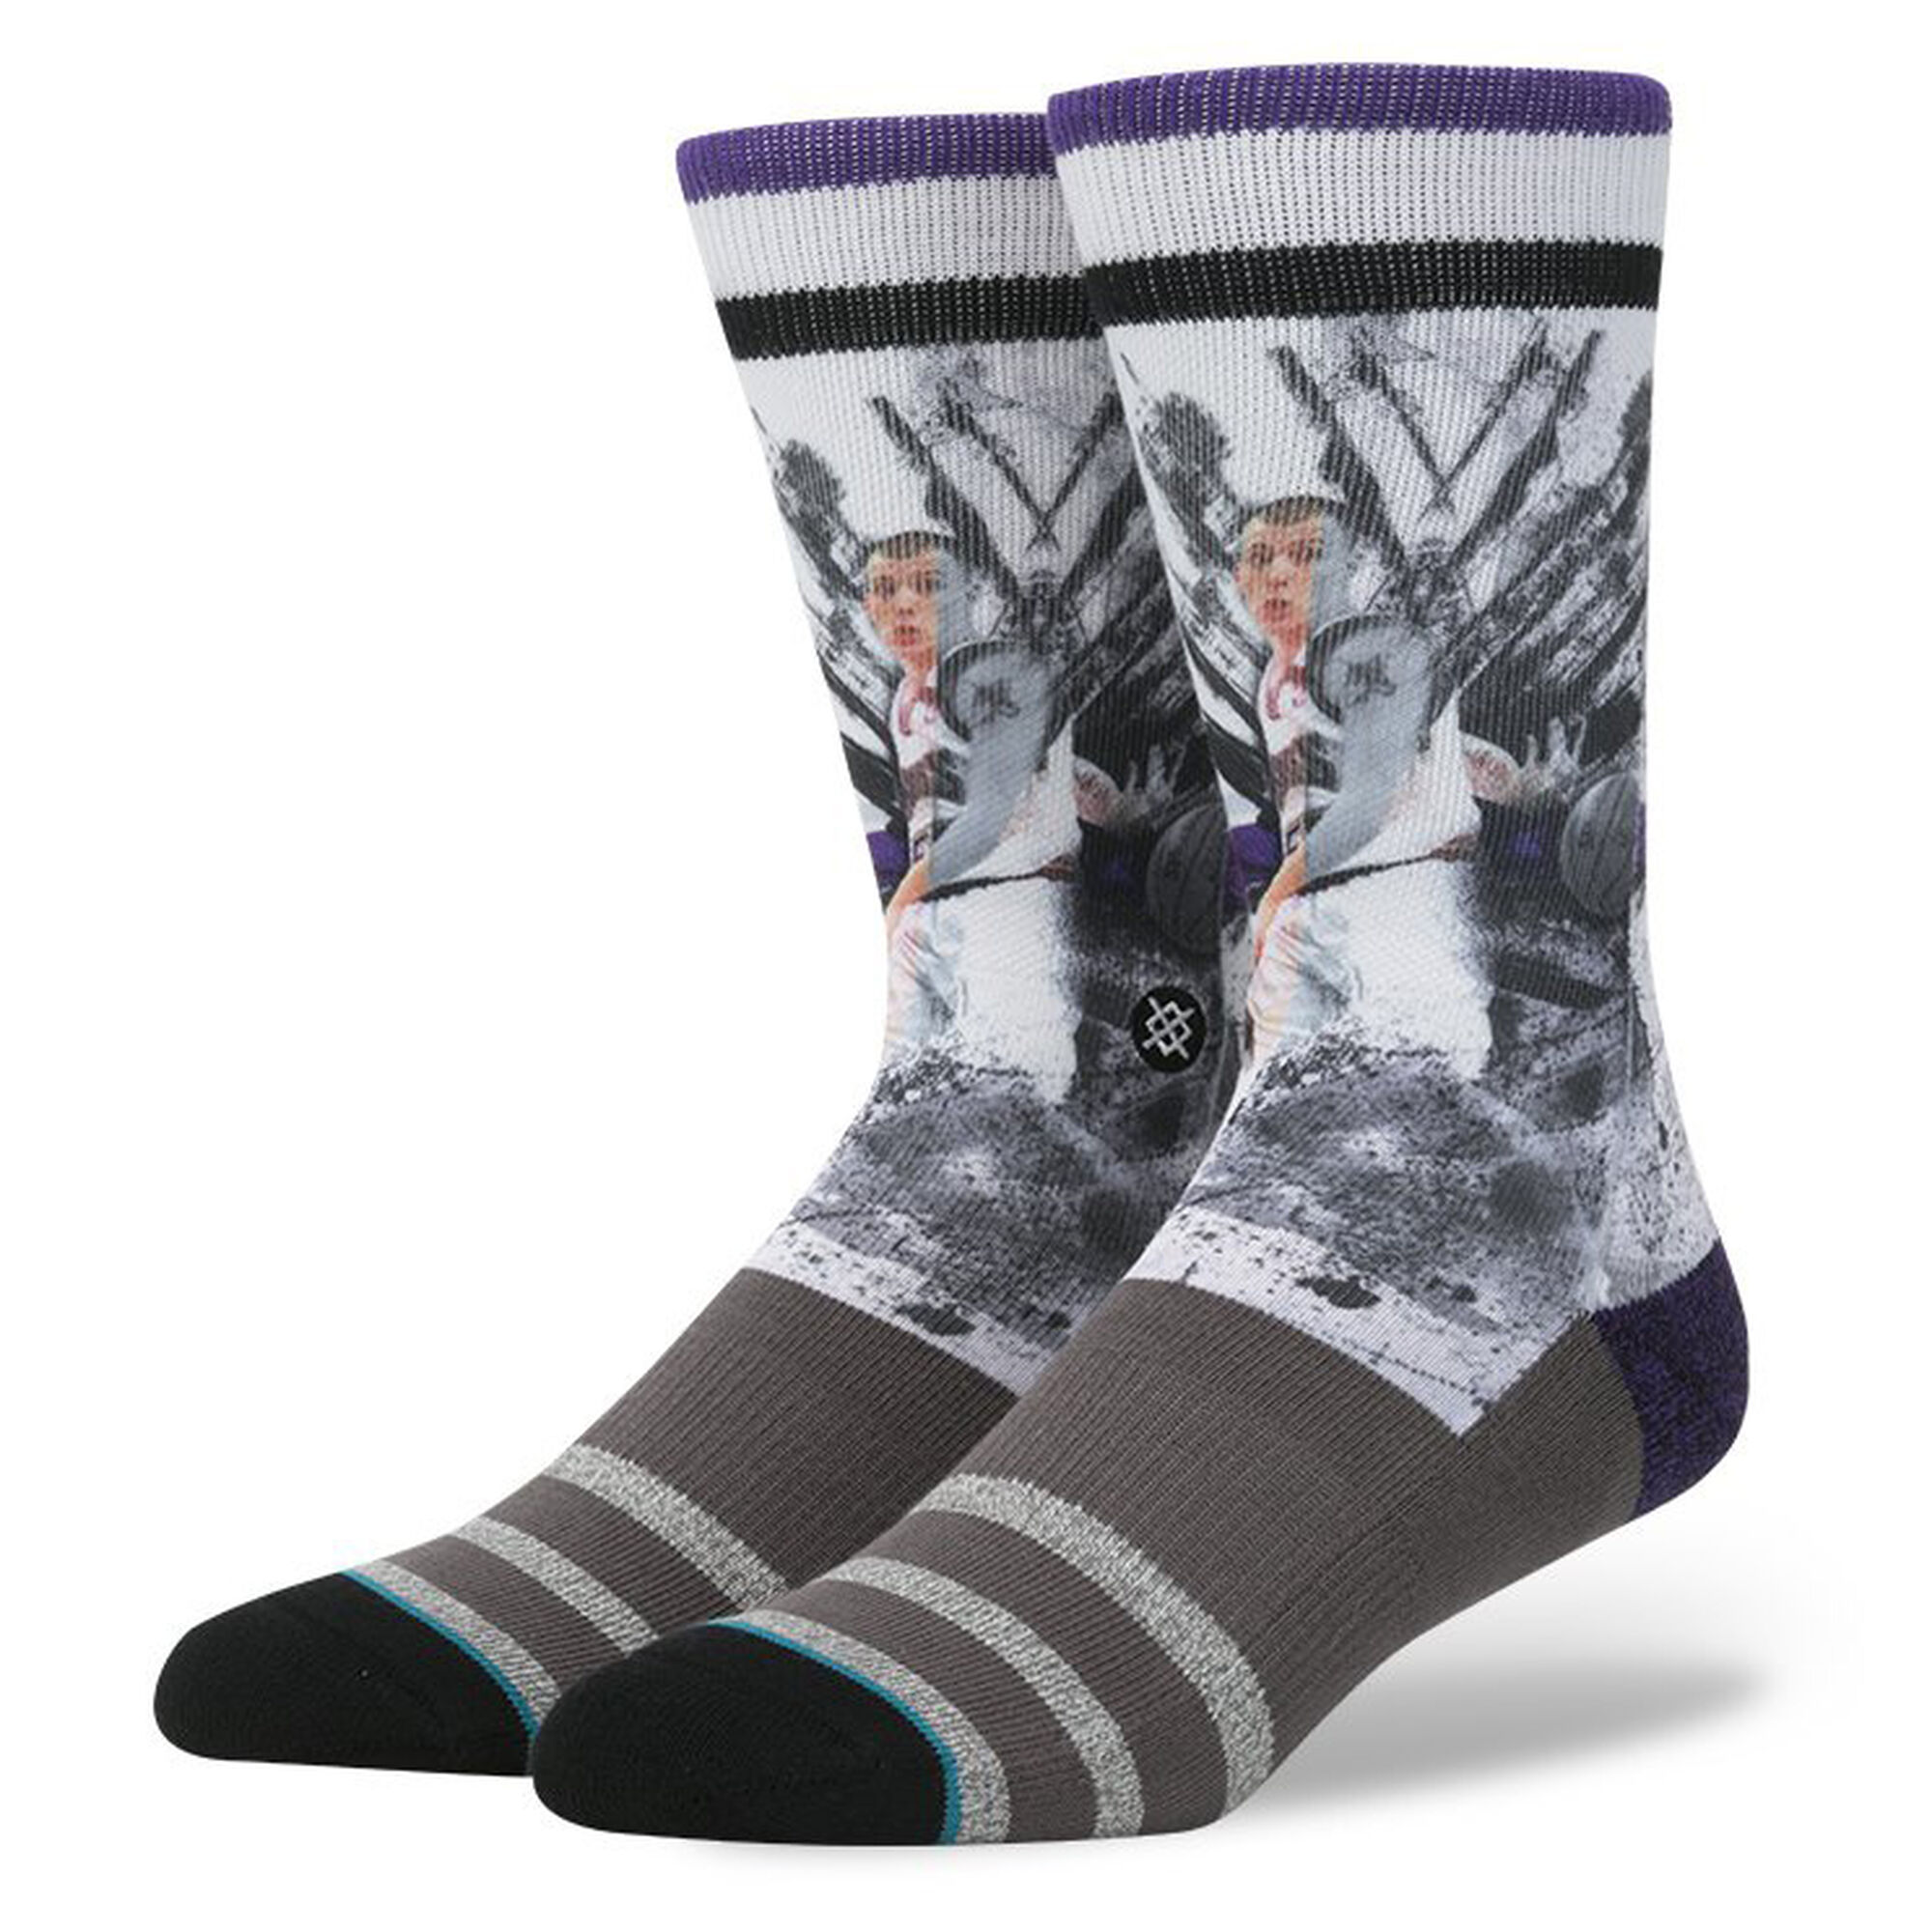 Jason Williams Ink Splatter - Mens NBA Legends Socks | Stance